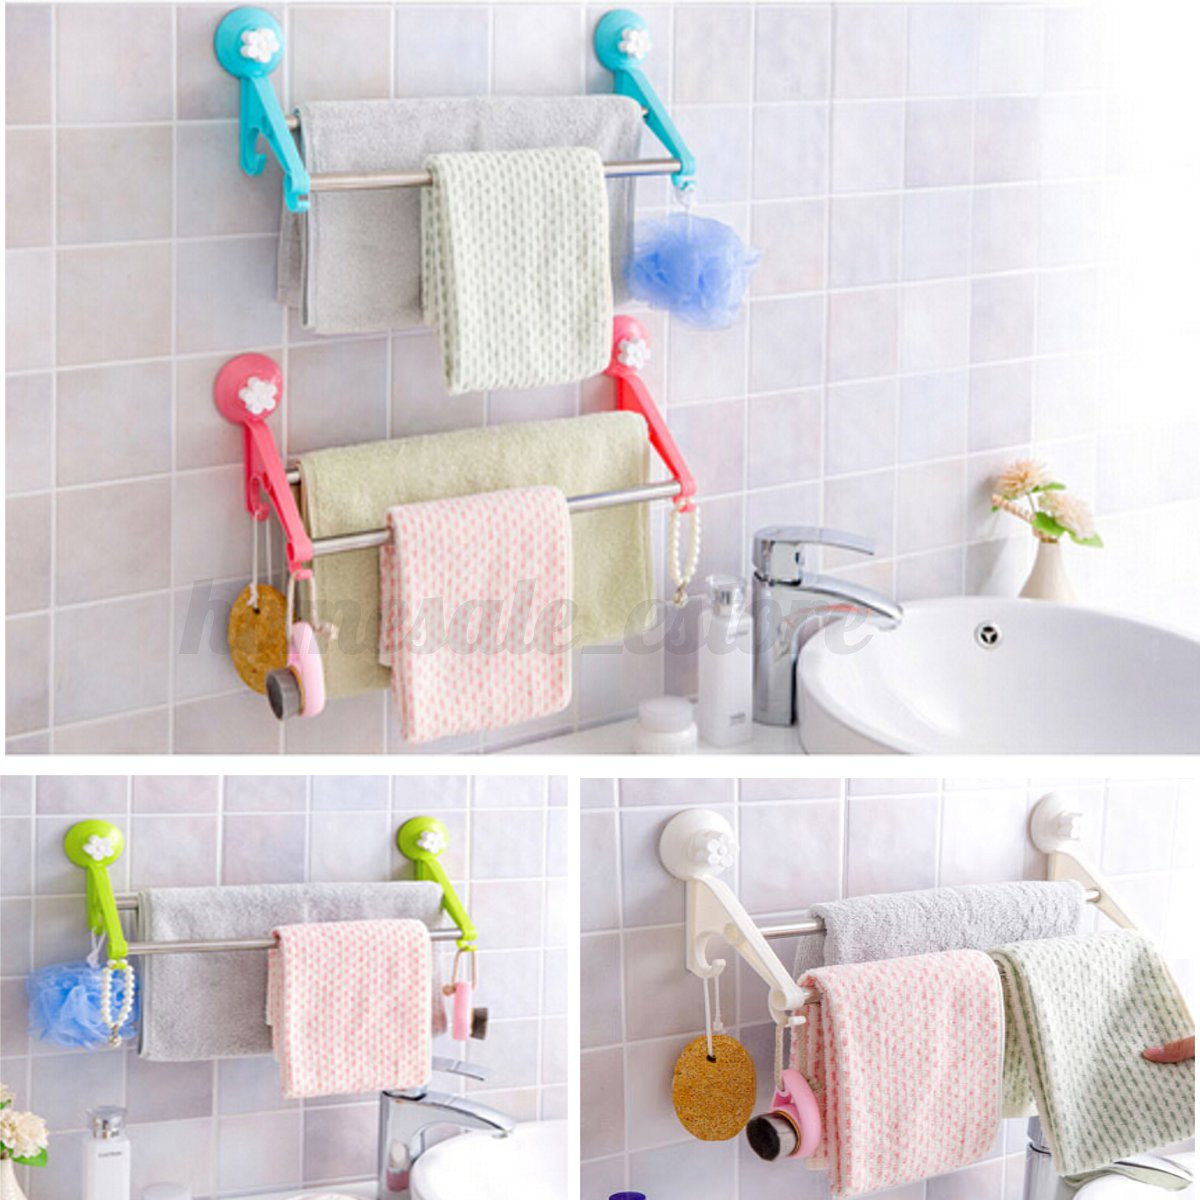 Bathroom Wall Hooks Towels: Plastic Double Wall Mounted Bathroom Rail Towels Shelf